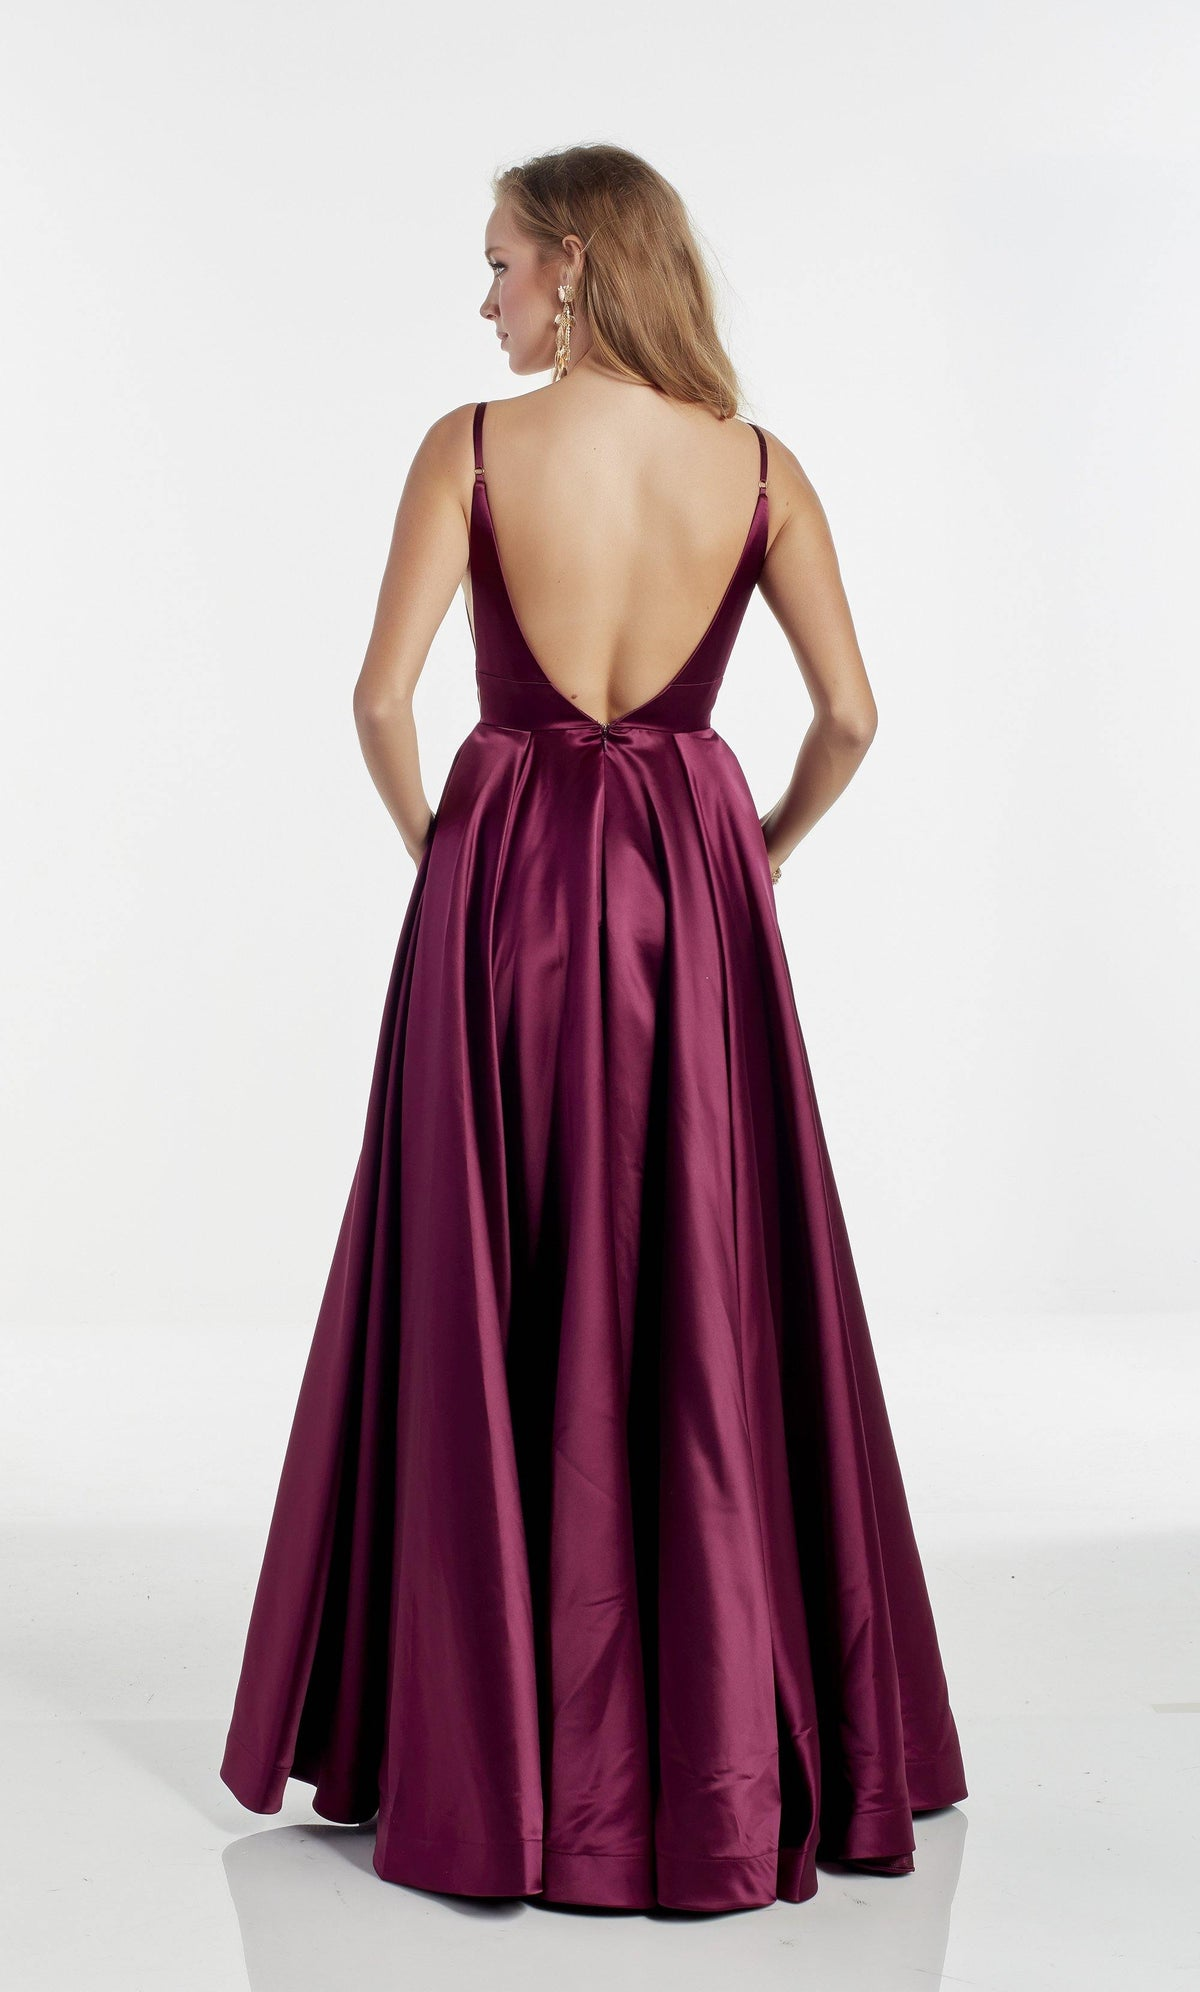 Black Cherry A line Bridesmaid dress with a V-shaped back and pockets